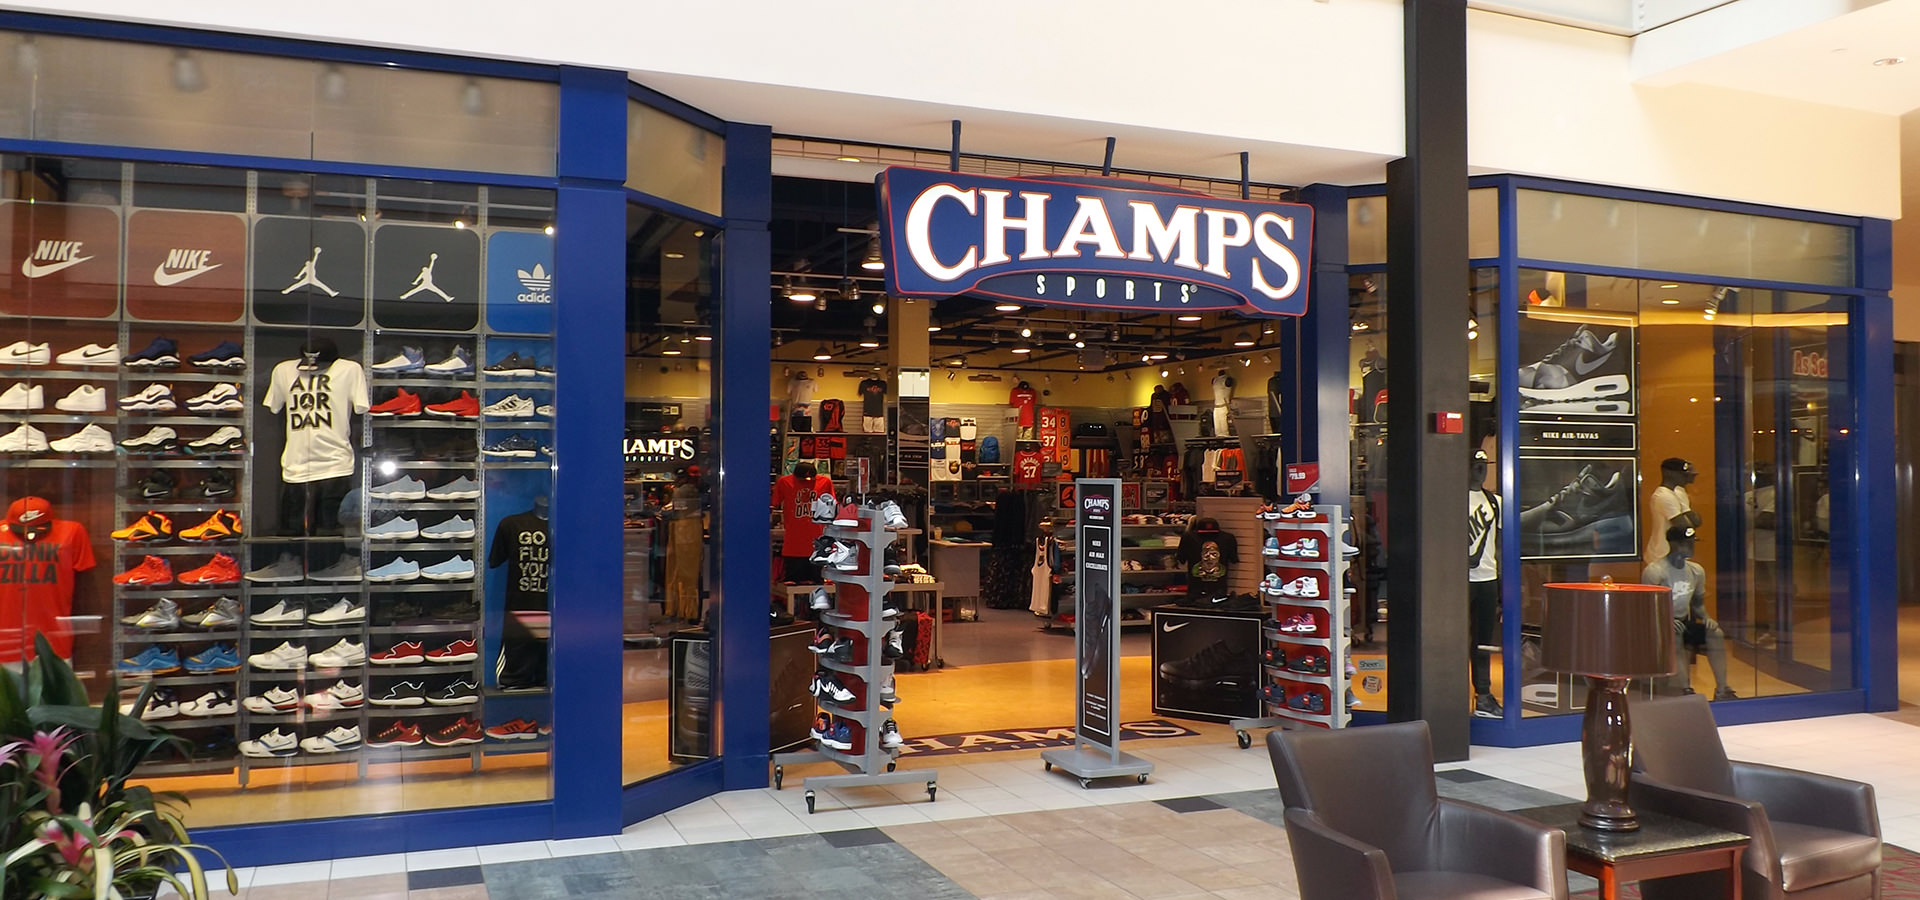 7ef7fbb1569 Champs Sports Near Me in Dulles